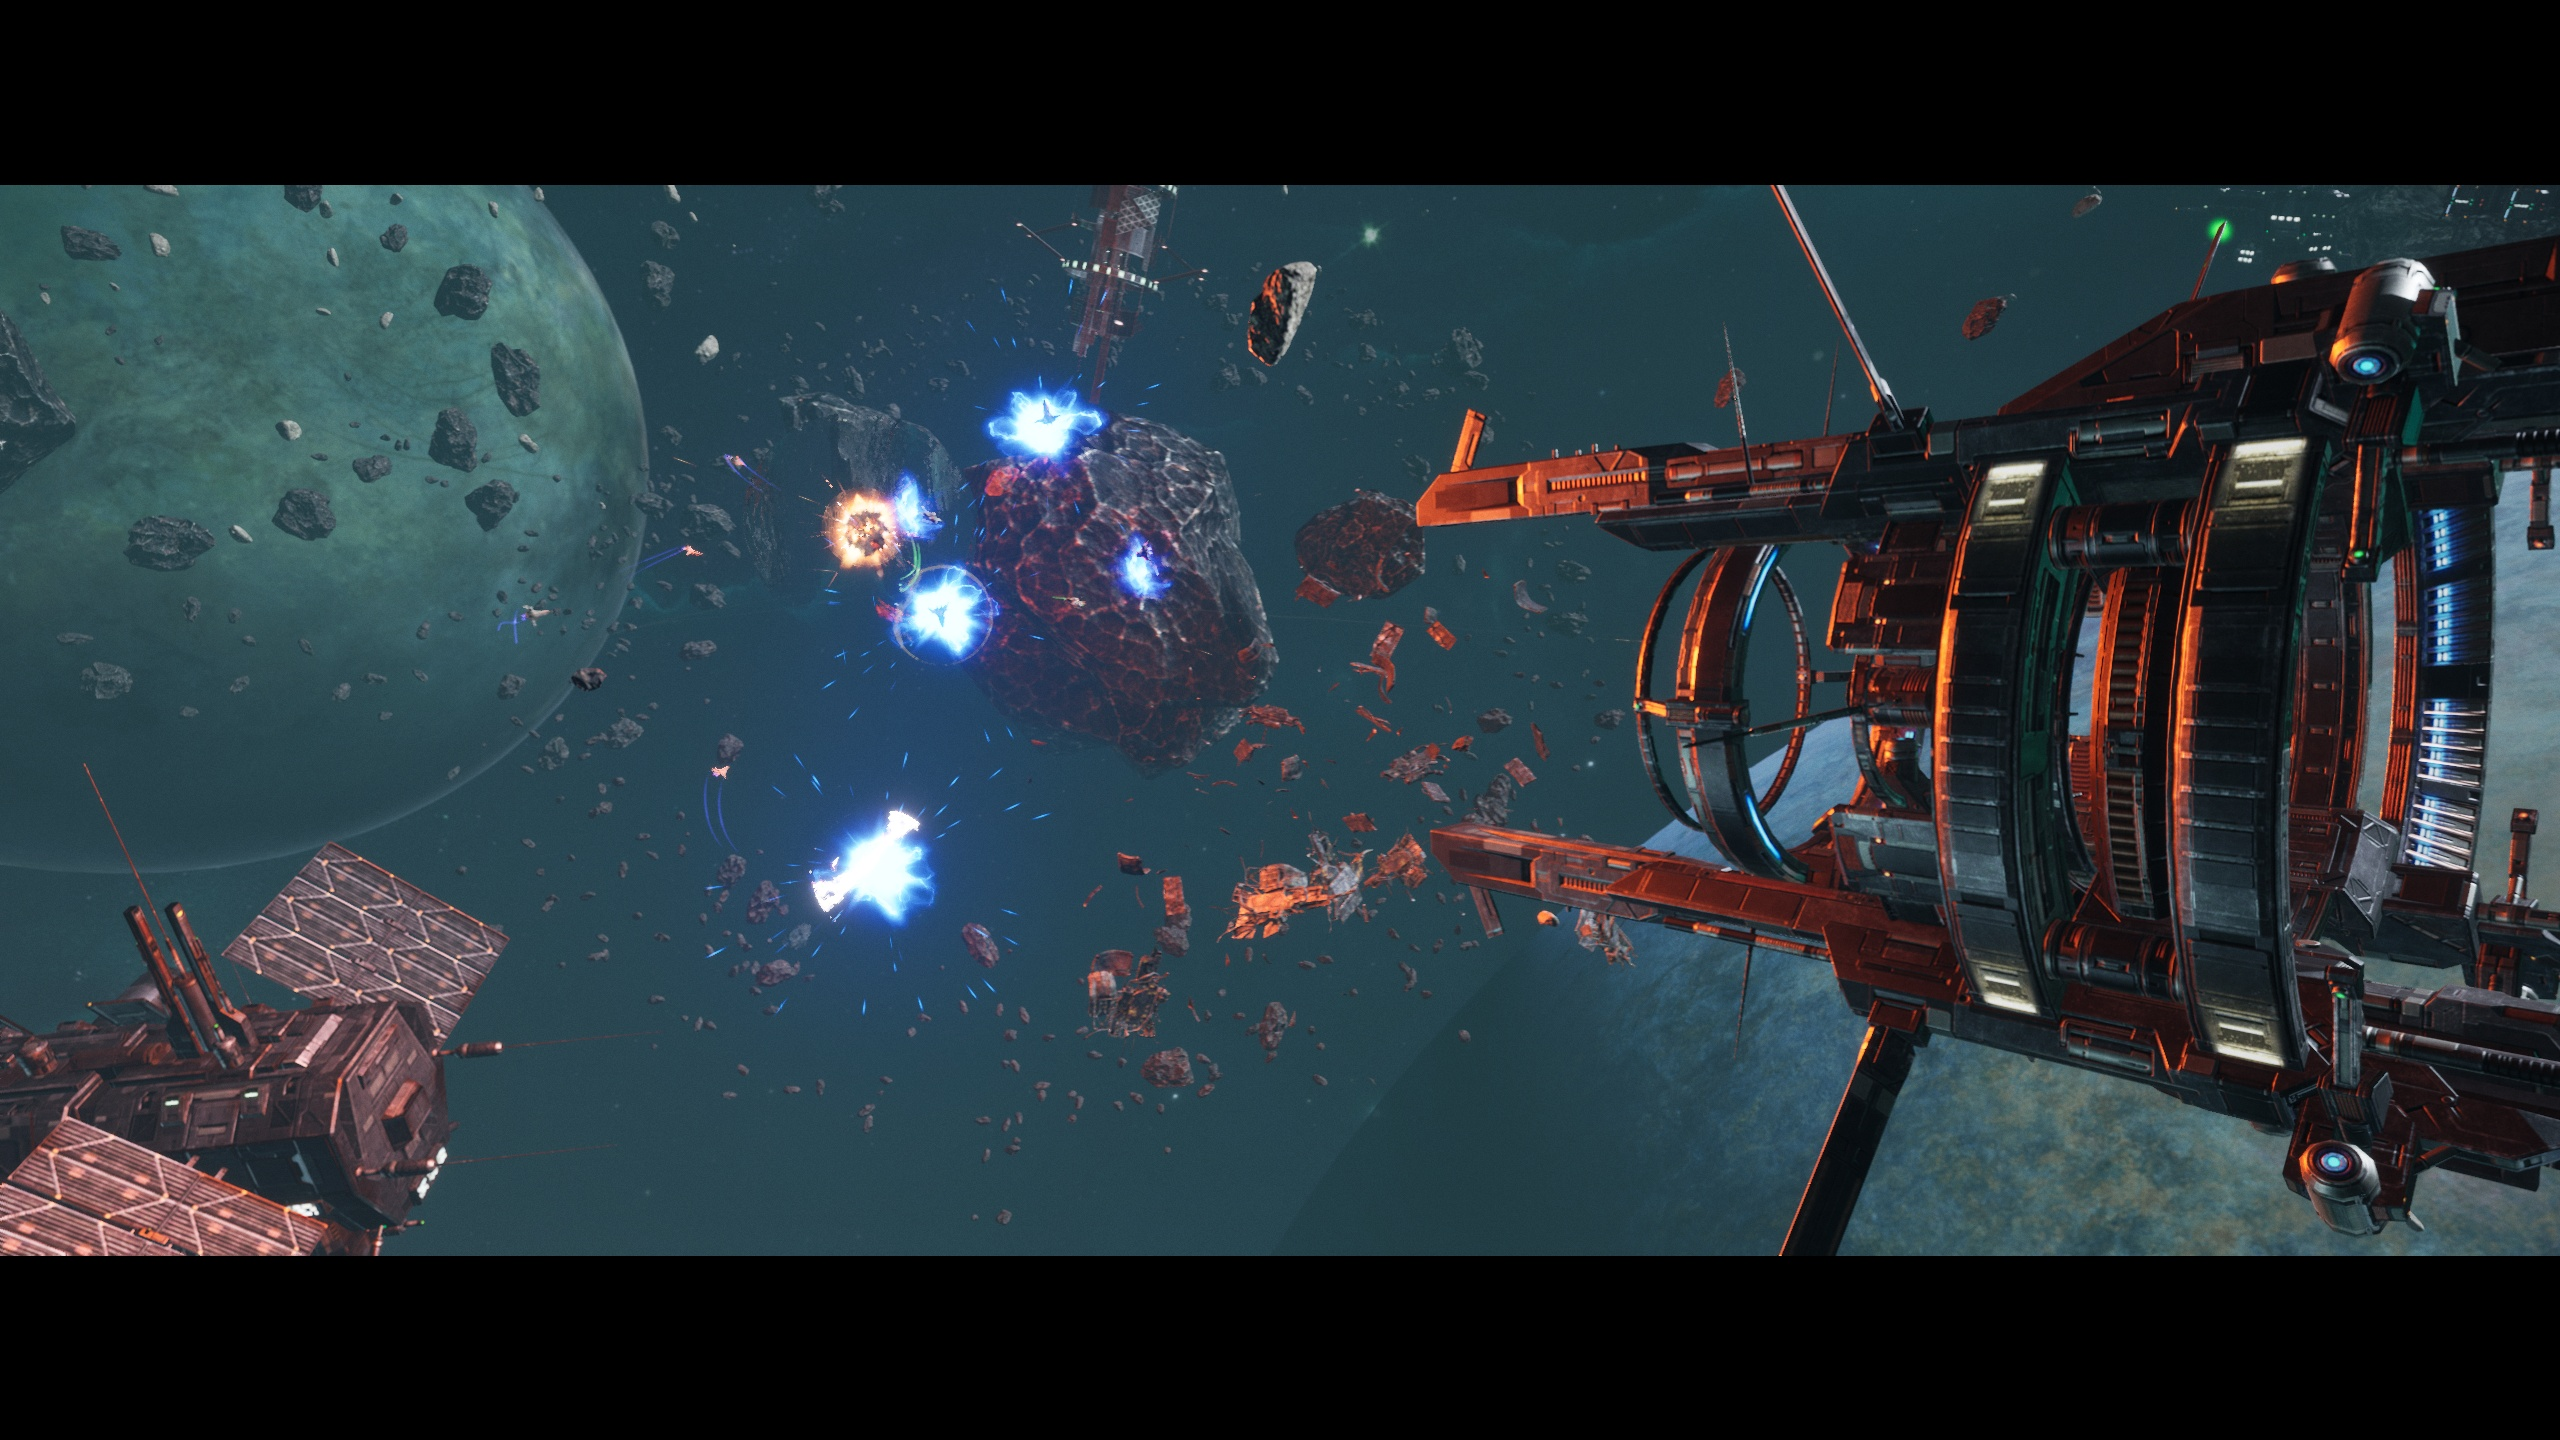 subdivision-infinity-dx-takes-off-on-consoles7-pc-in-early-2019-frikigamers.com.jpg